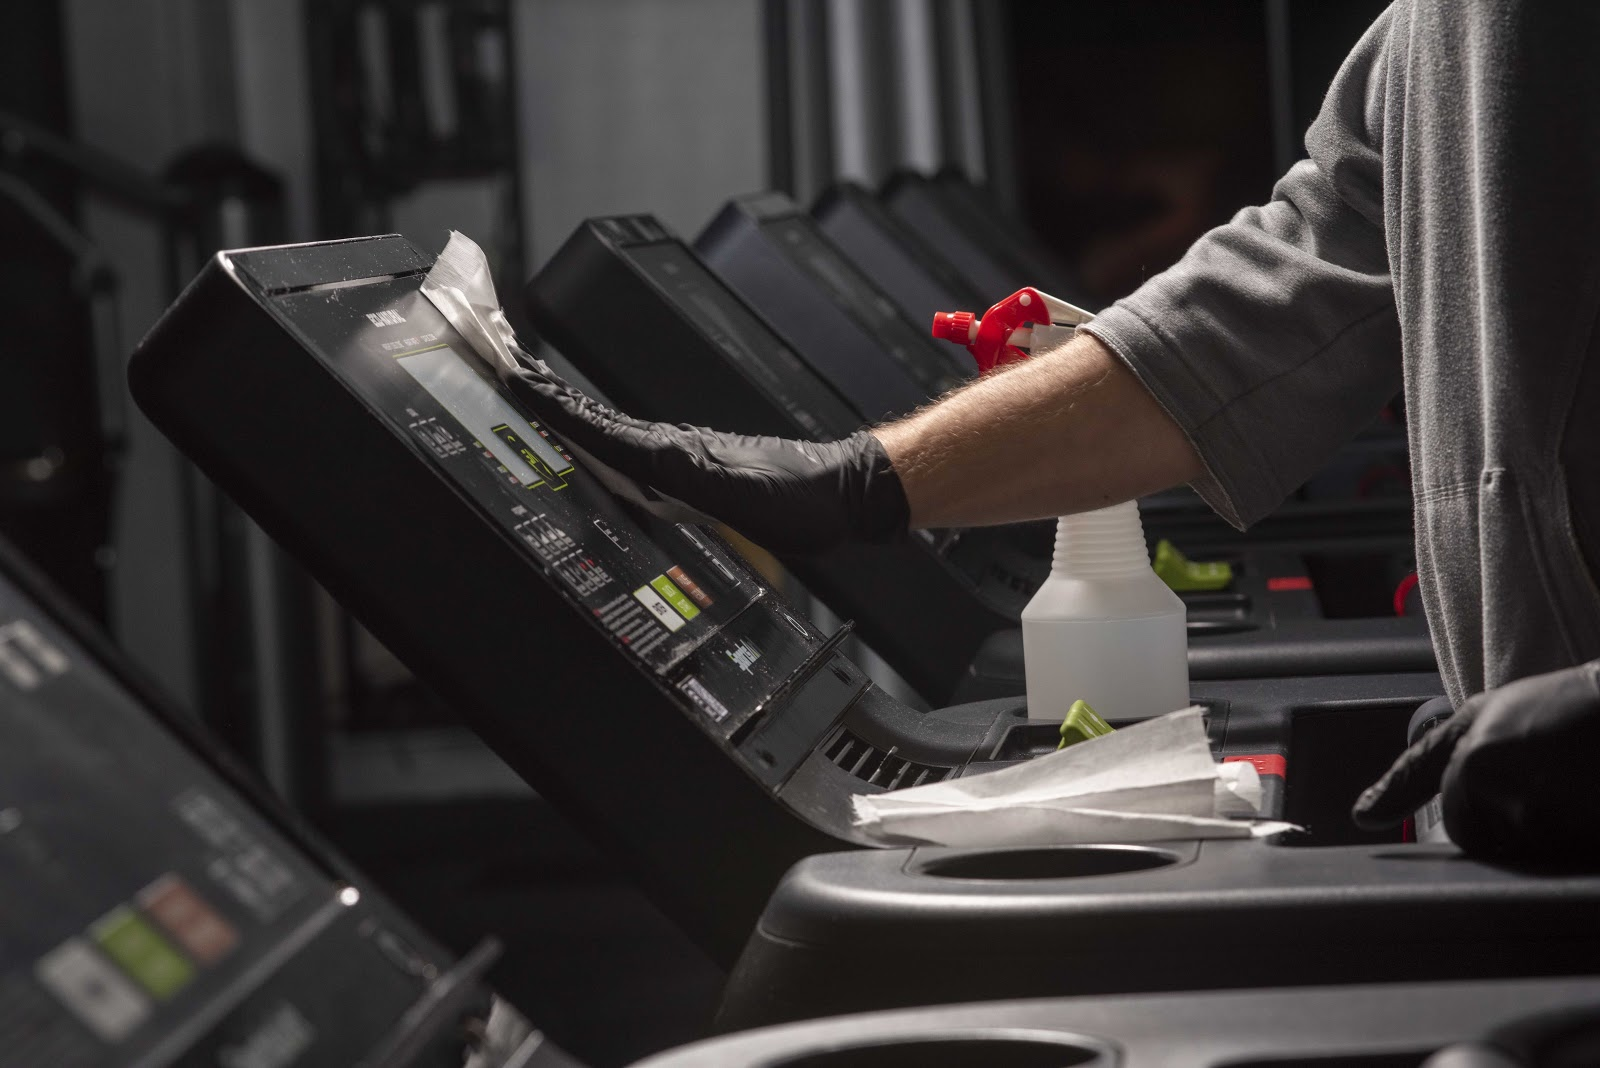 man wearing gloves disinfecting treadmill